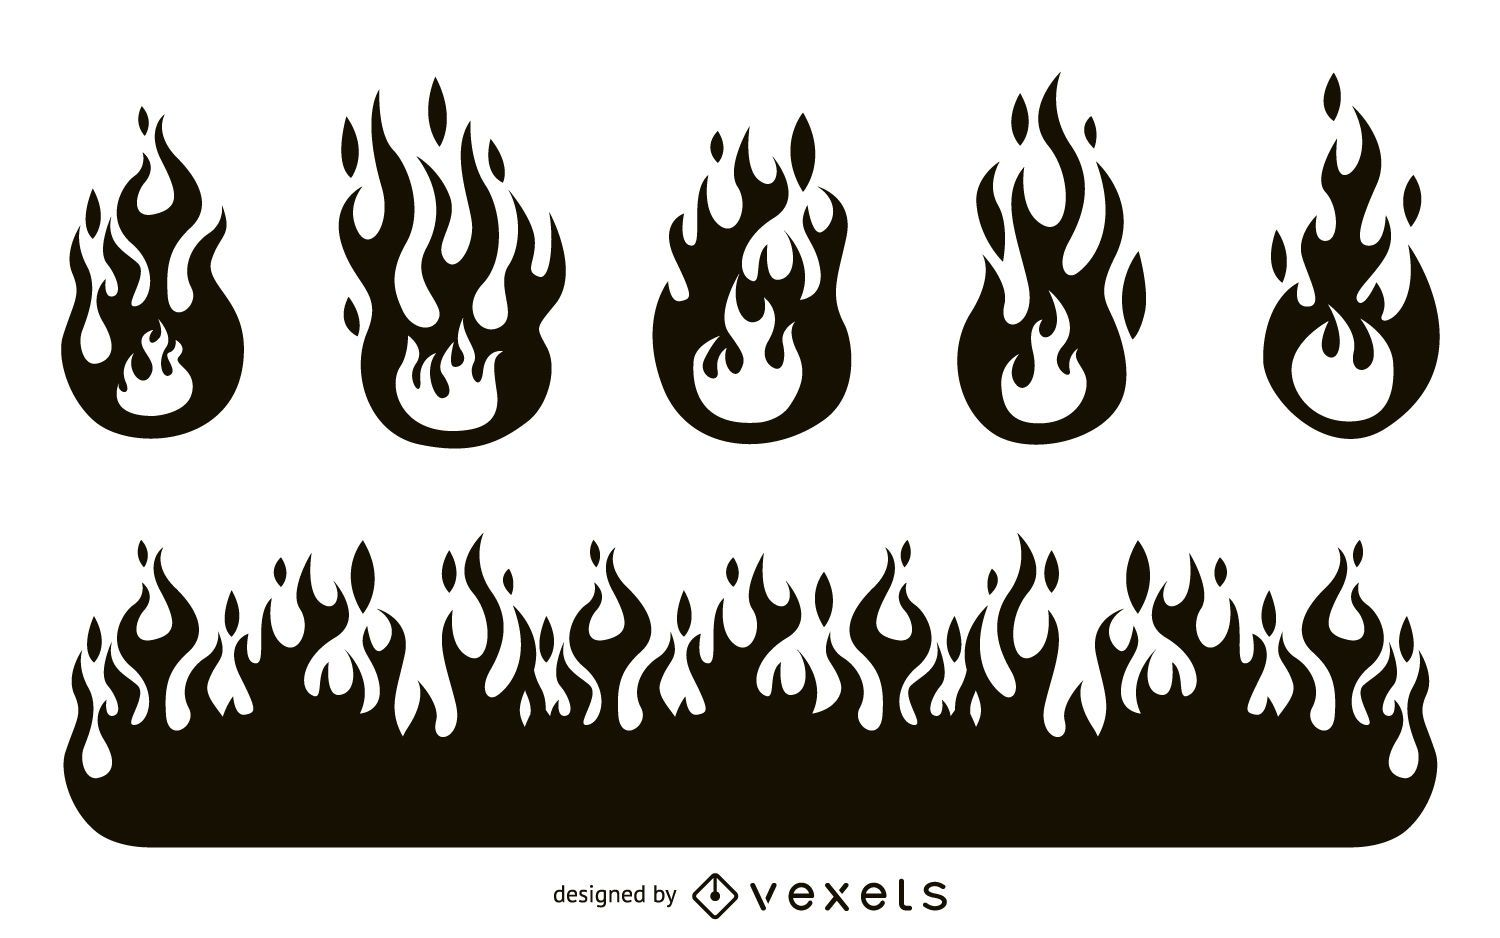 Fire flame silhouette set - Vector download